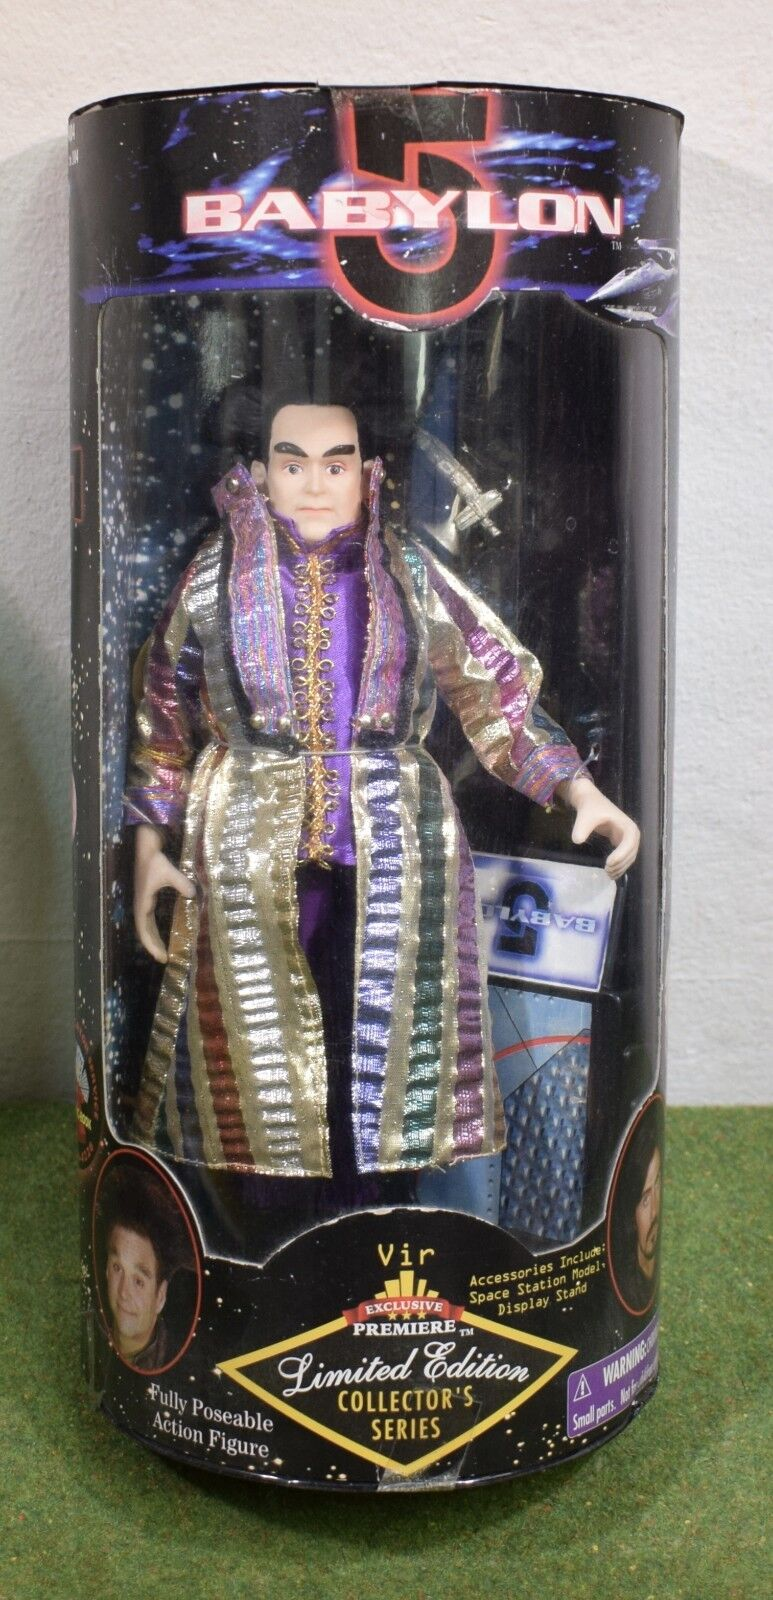 EXCLUSIVE PREMIERE DIAMOND COMIC BABYLON 5 VIR ACTION FIGURE